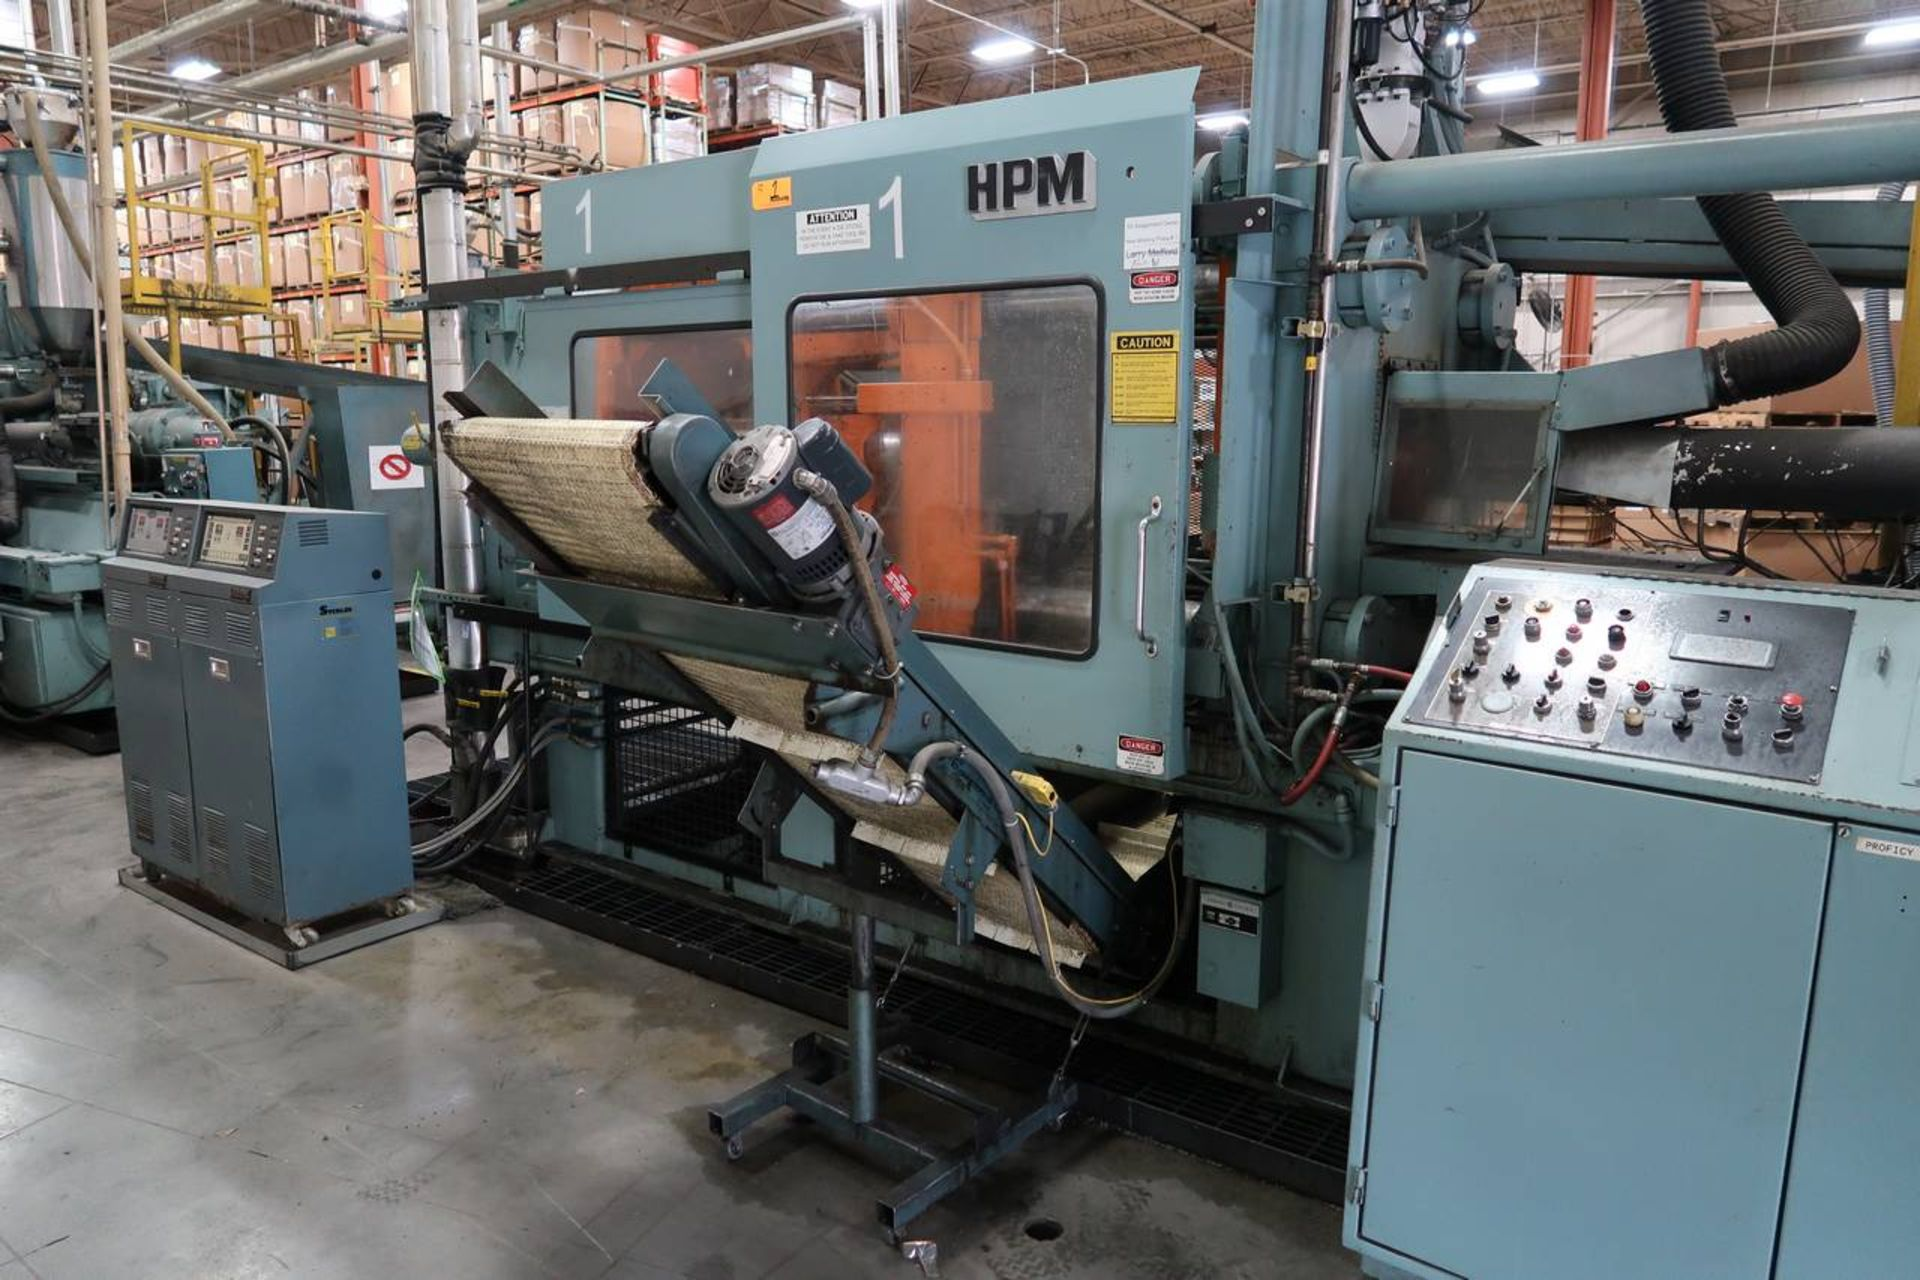 1986 HPM 400-TP-20 400-Ton Thermo Plastic Injection Molding Press - Image 6 of 40